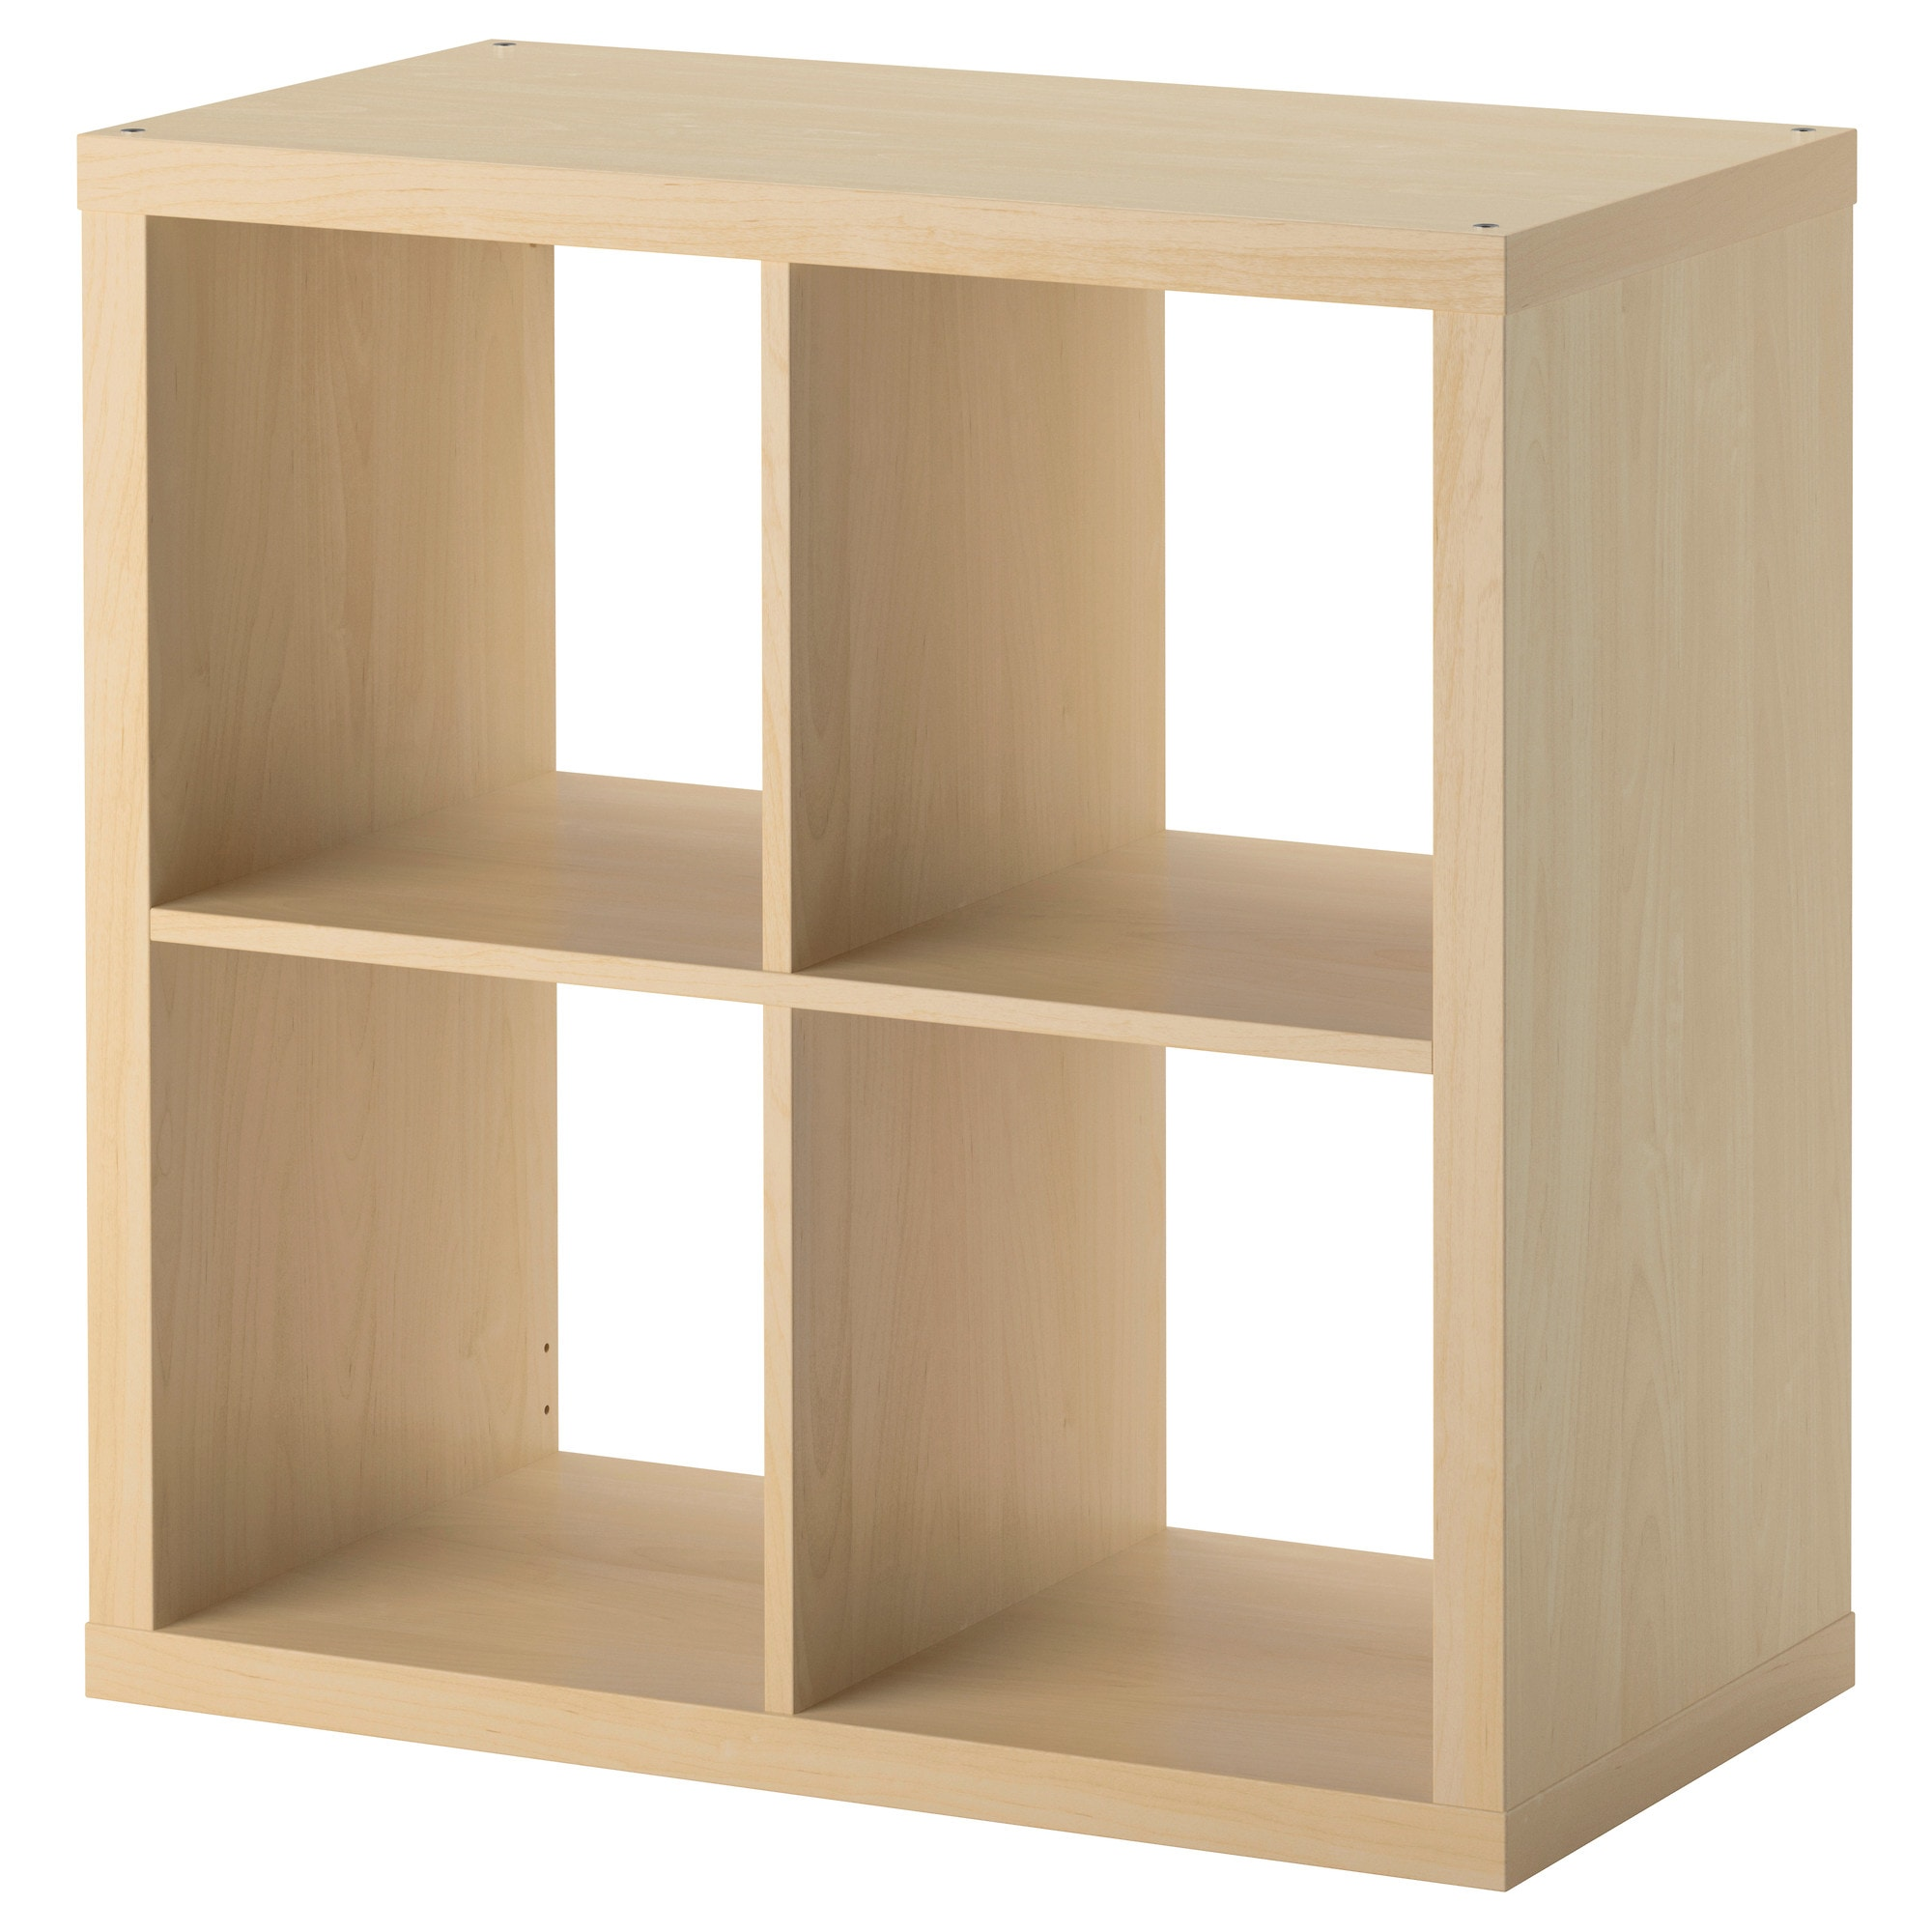 Cube ikea fashion designs for Ikea box shelf unit